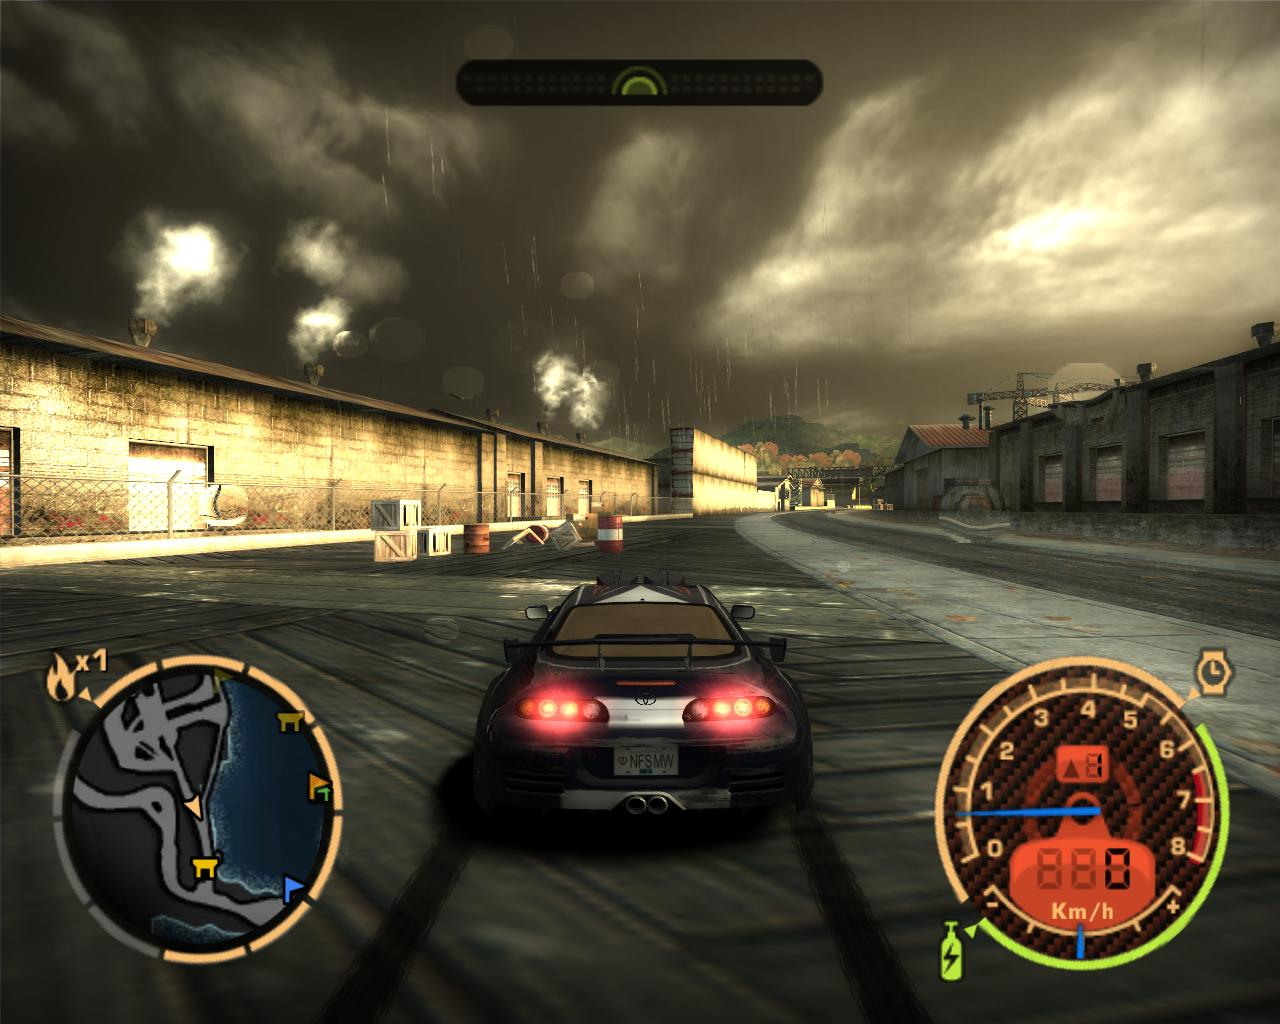 Need for speed most wanted 2005 torrent download pc | Need